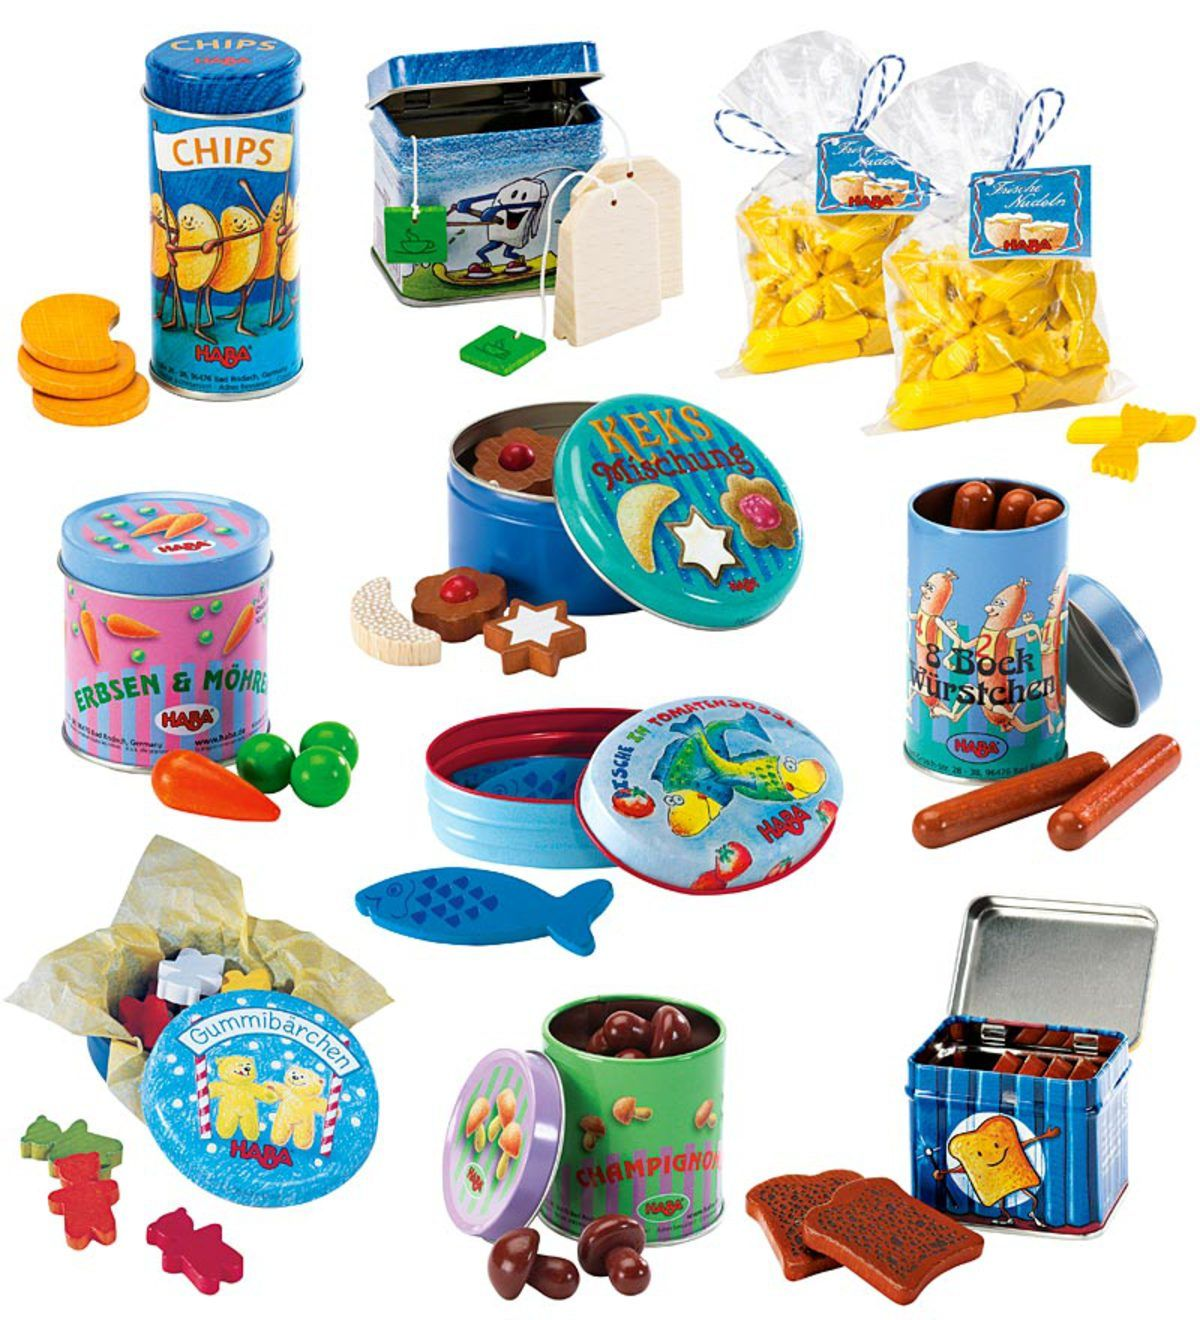 A pantry full of whimsical wooden play foods packaged in